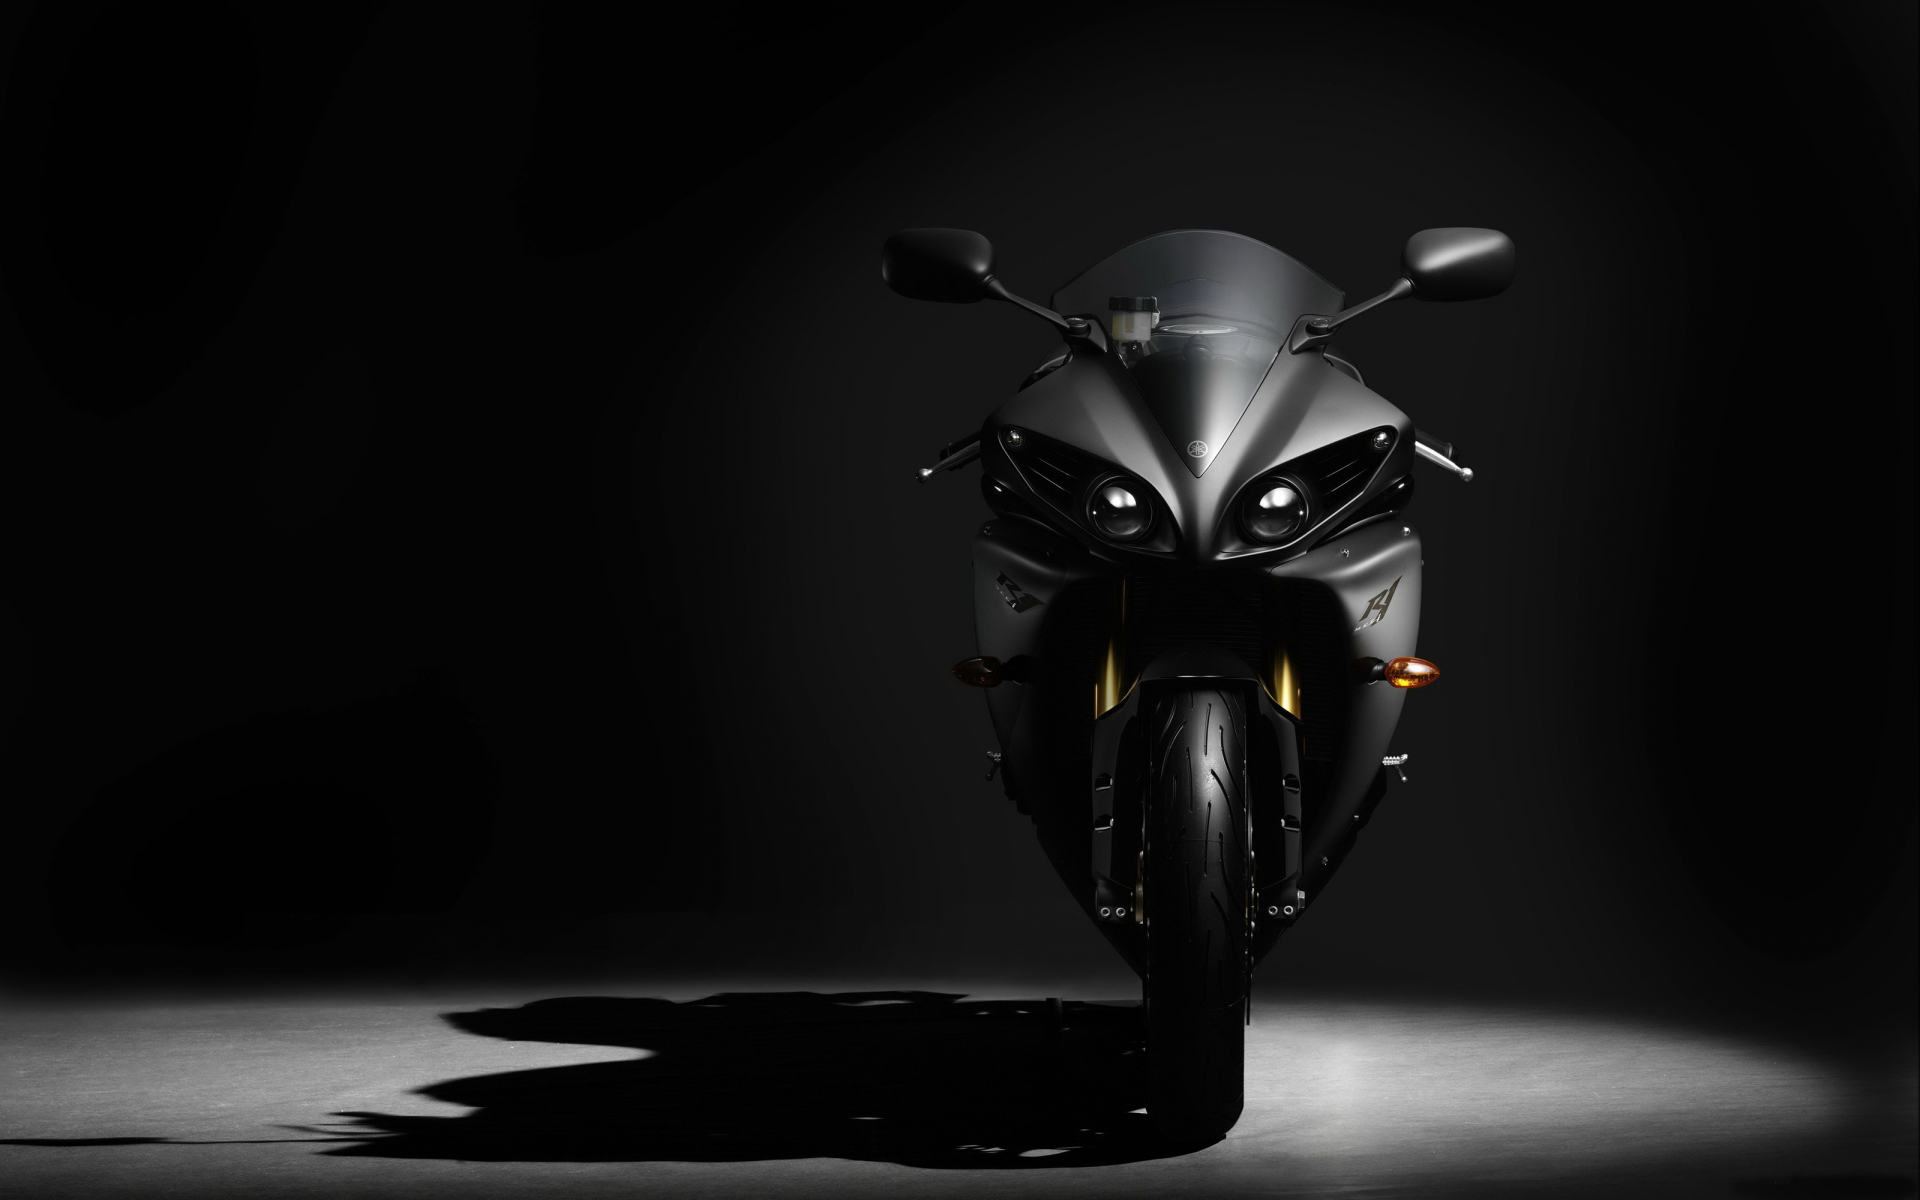 Black Bike Wallpaper